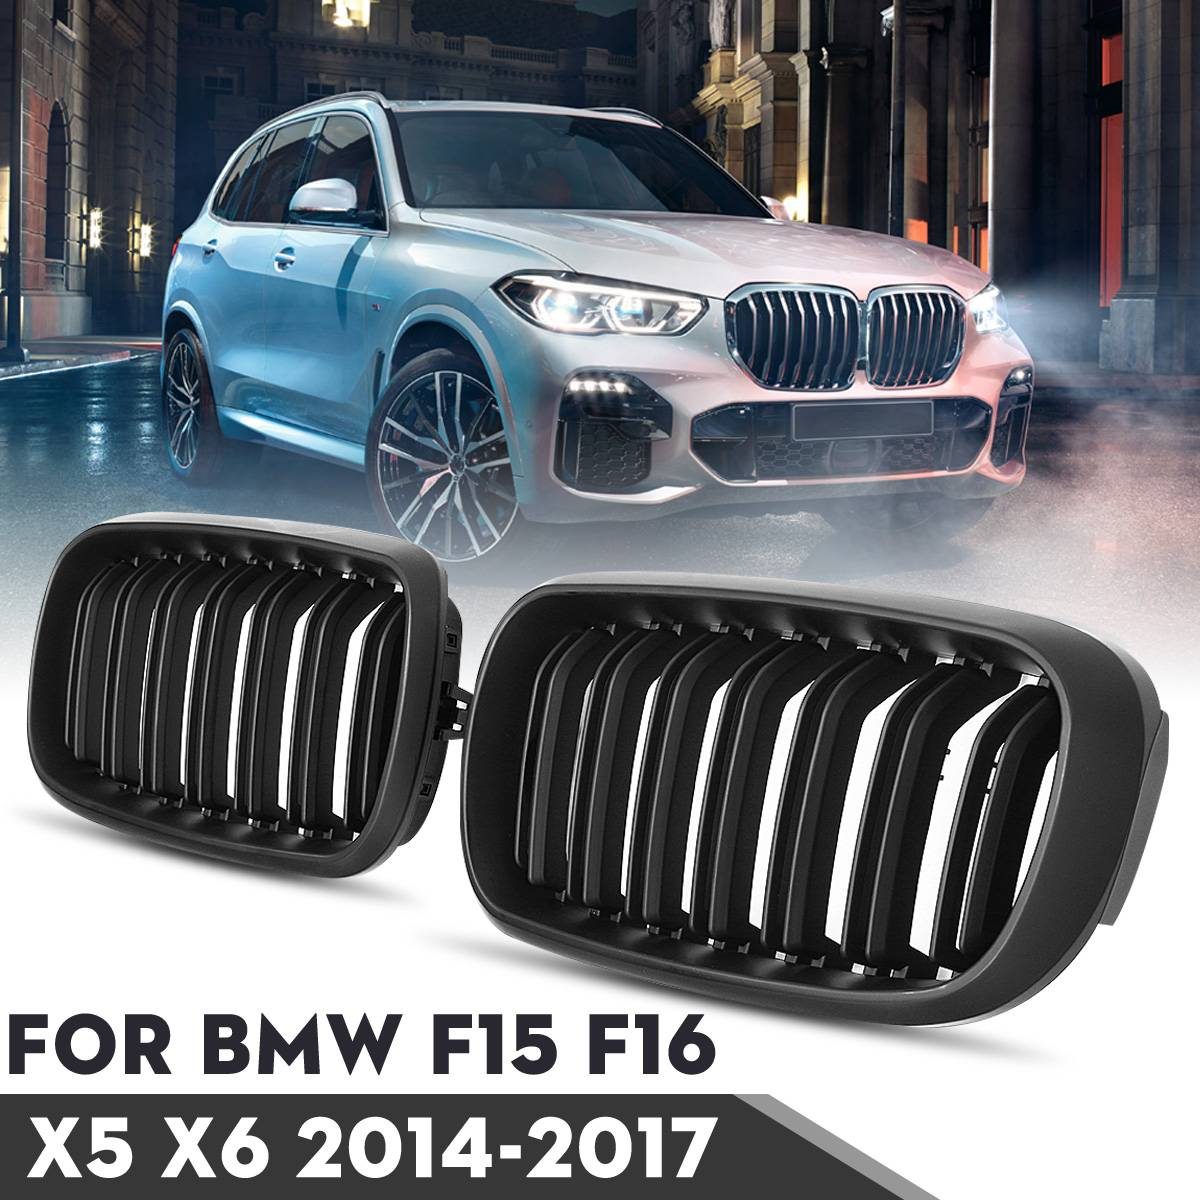 Slat Grilles Front-Bumper Kidney Black X6M Double-2 Bmw F15 1pair Car for F16x5/X6/F85/F86x5m title=